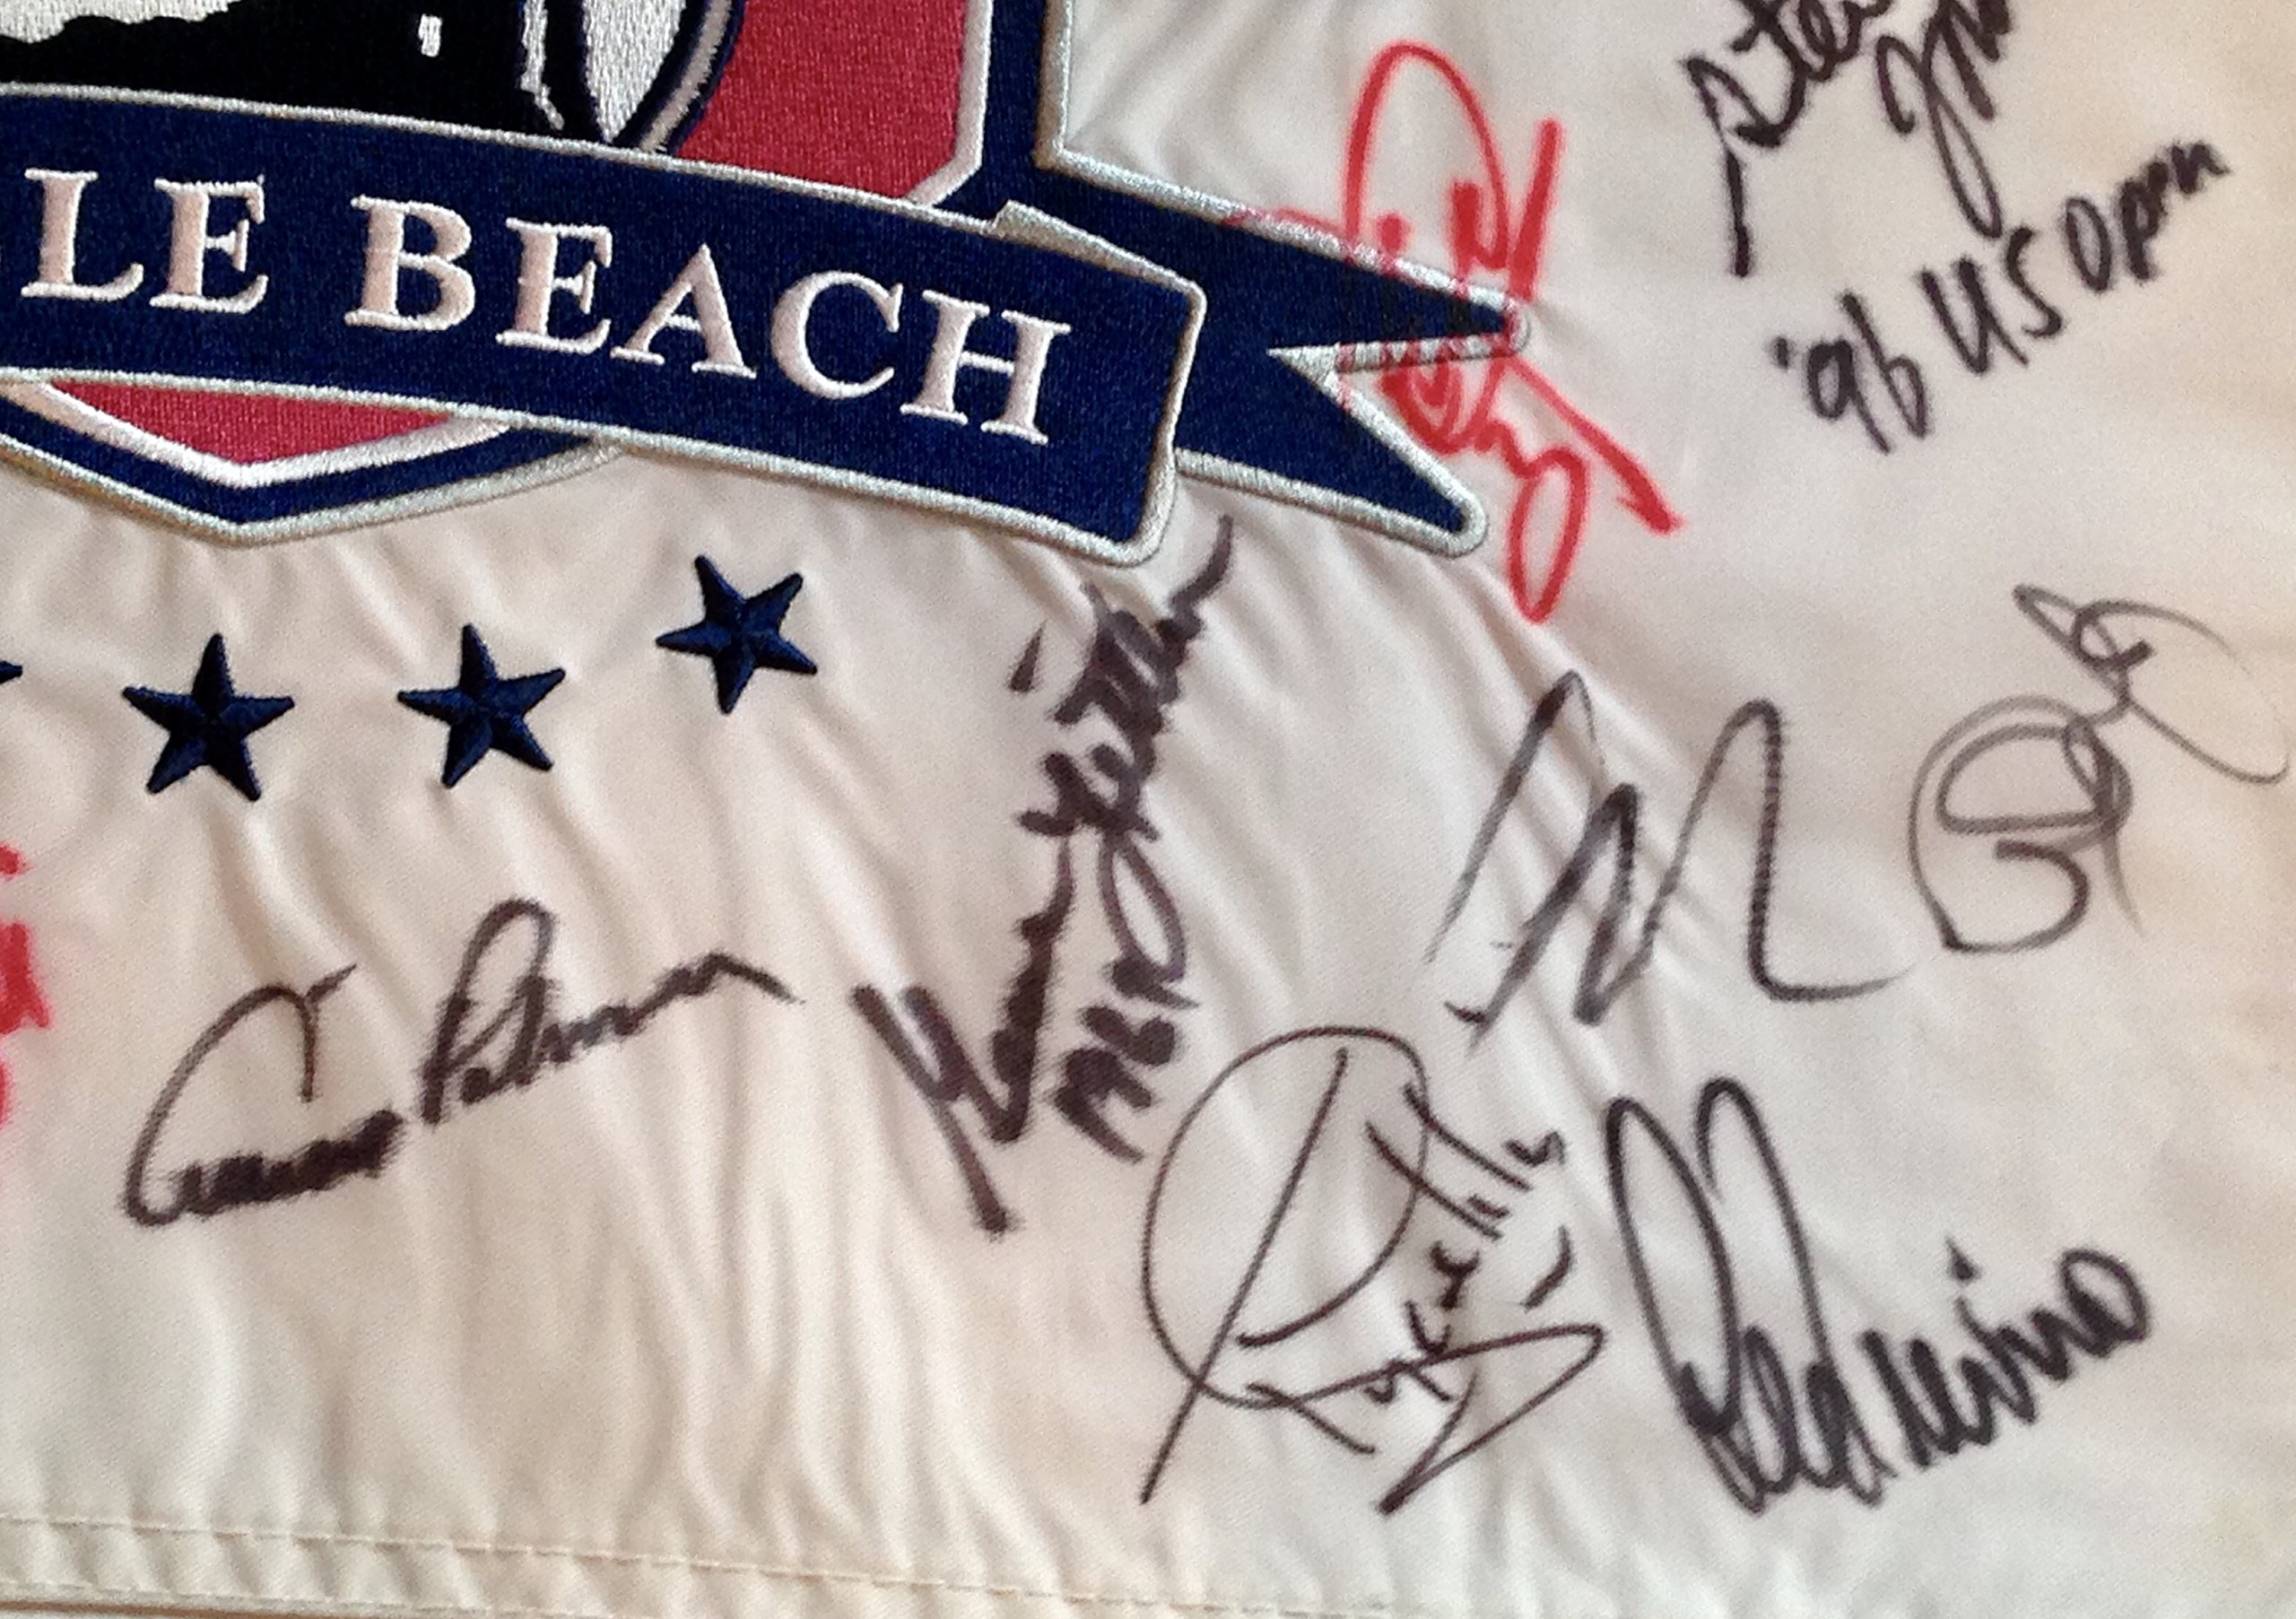 Pebble Beach U.S. Open golf signed flag 25 champions Jack Nicklaus Arnold Palmer Rory